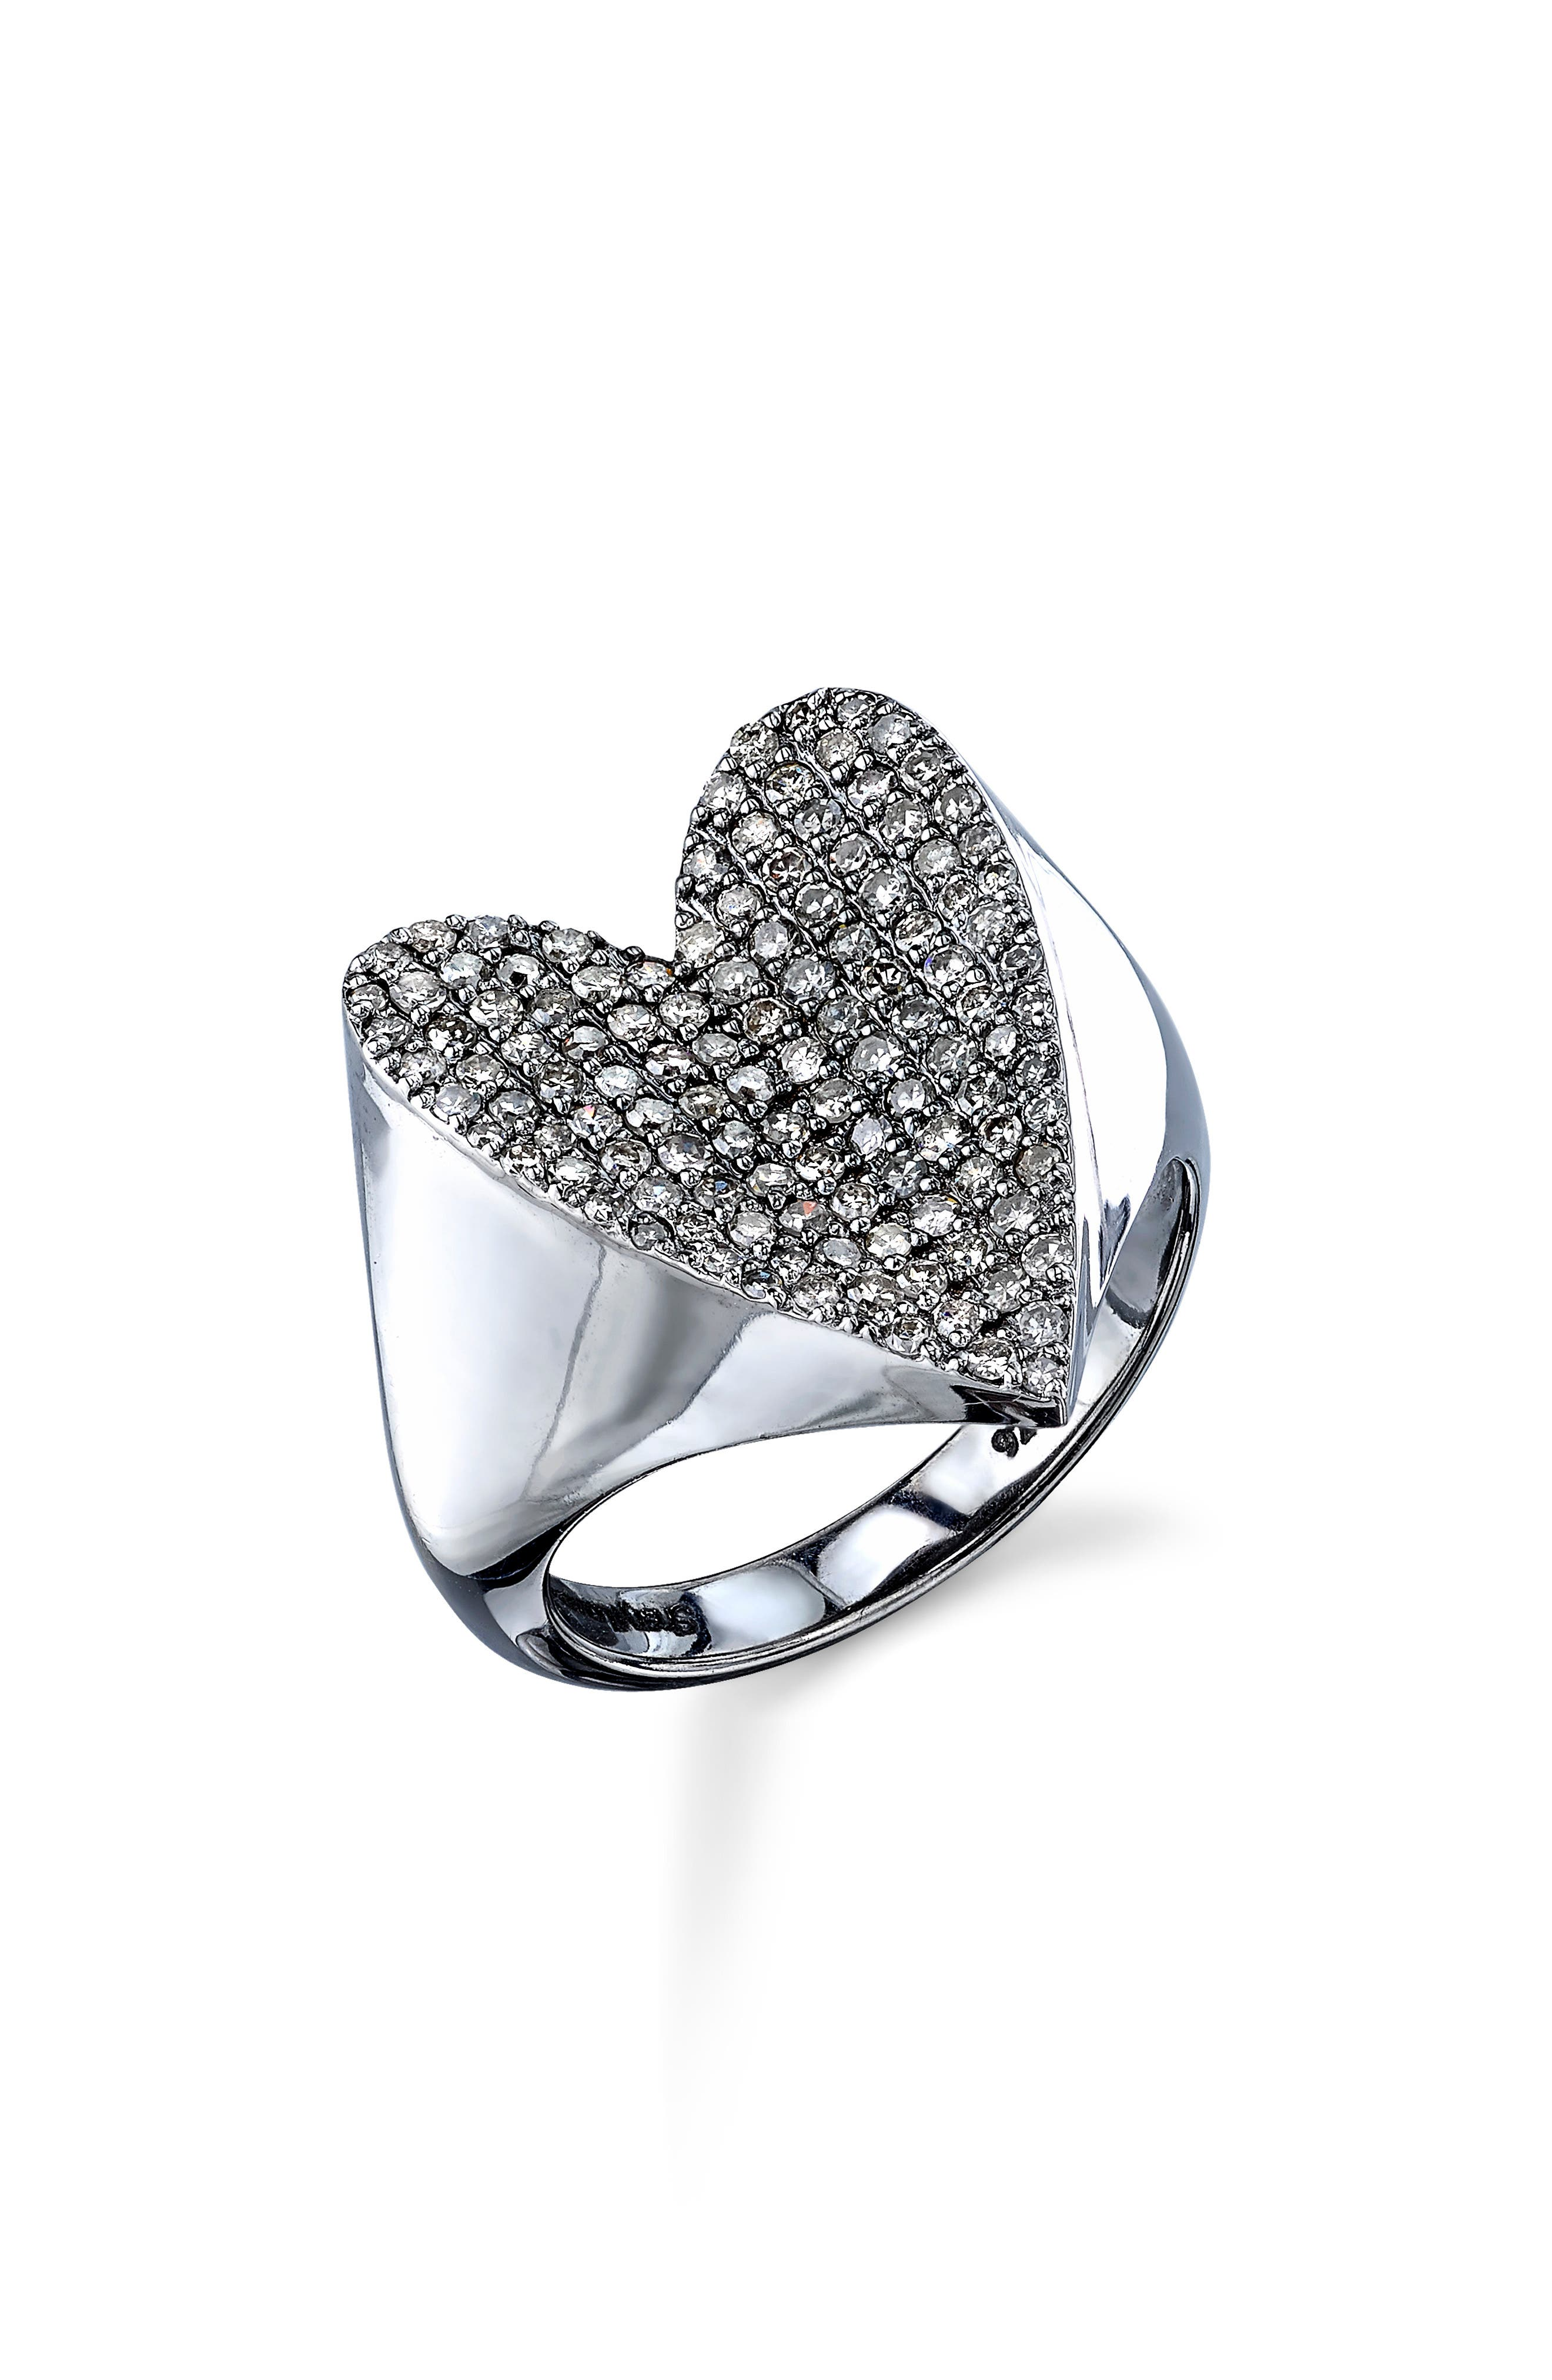 SHERYL LOWE Pave Diamond Heart Ring in Sterling Silver